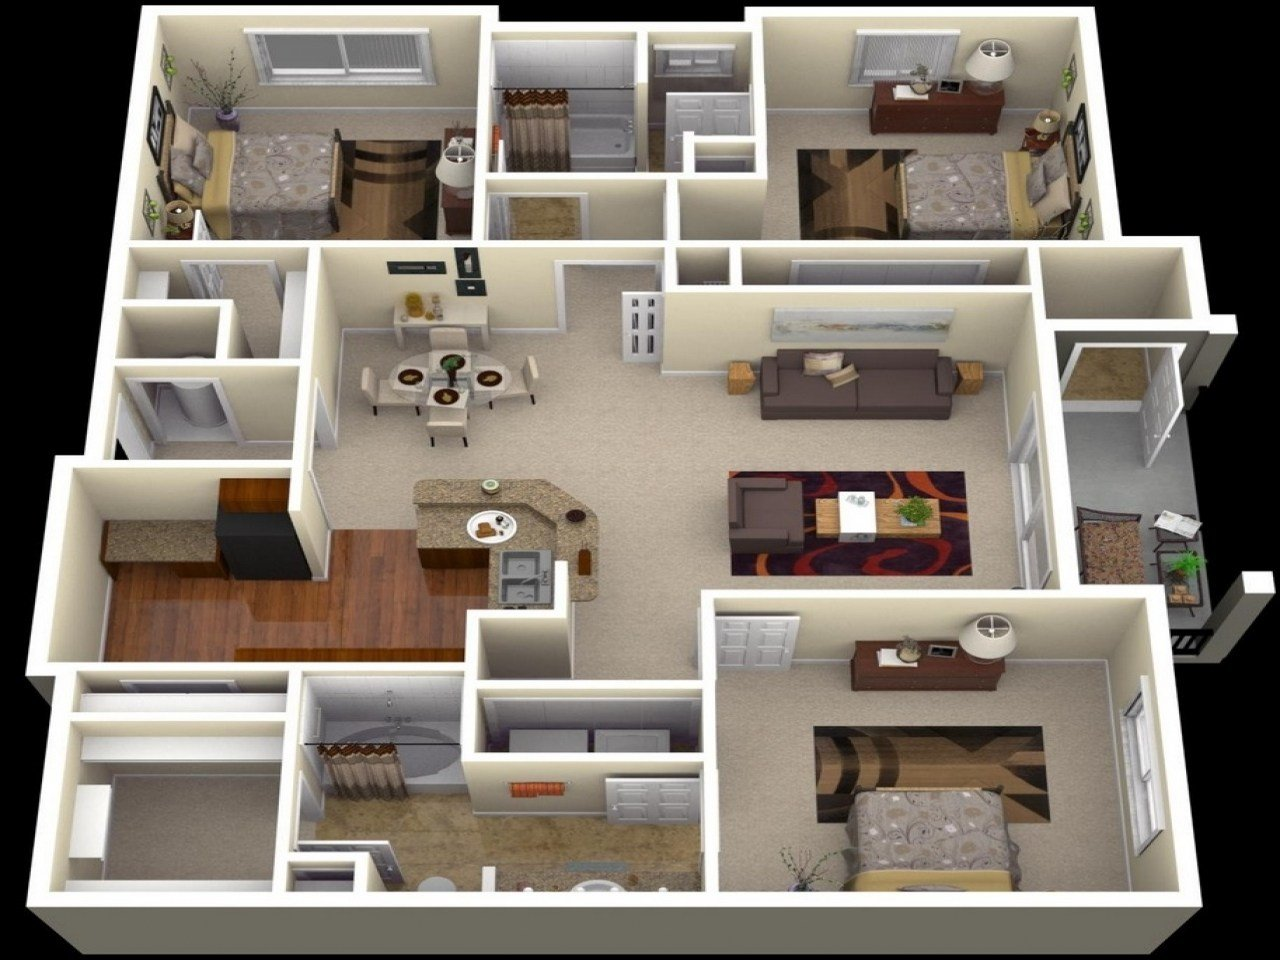 Best 3 Bedroom Apartment Floor Plans 3D 3 Bedroom Apartments In Dc Floor Plans For 3 Bedroom Homes With Pictures